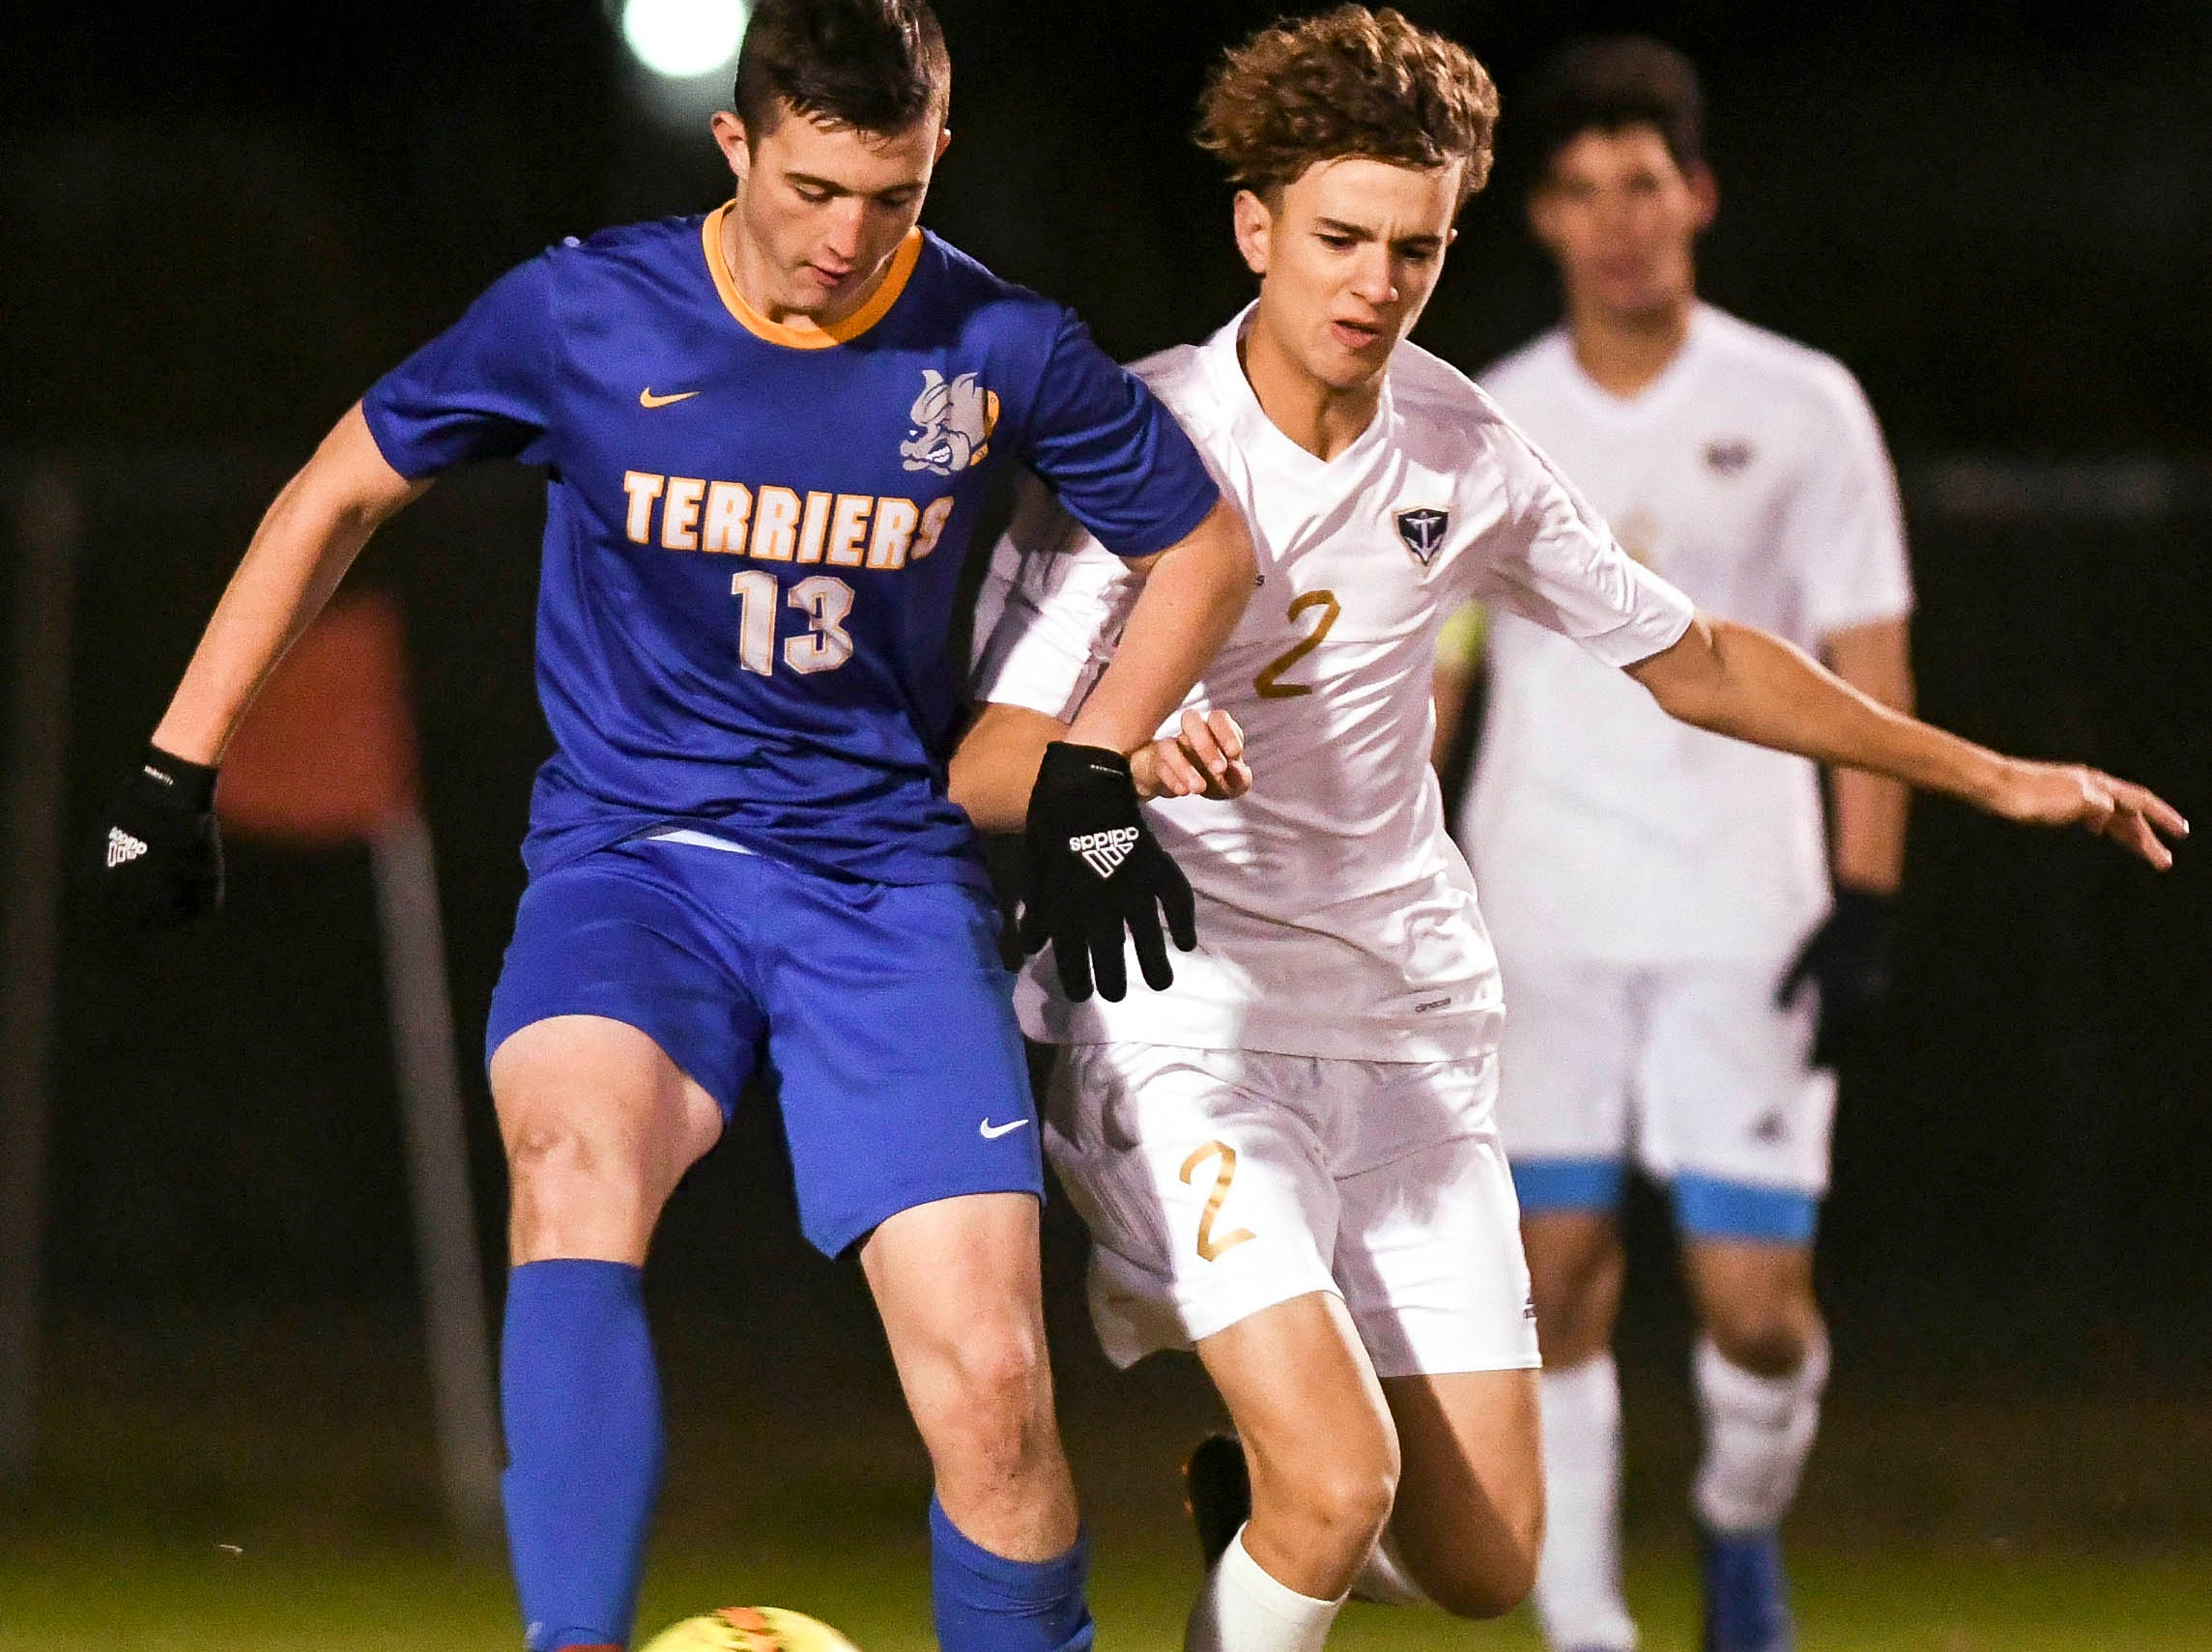 Titusville's Jeremy Pless (13) and Alex Masedo of Eau Gallie battle for possession of the ball during Wednesday's District 12, Class 3A semifinal at McLarty Stadium